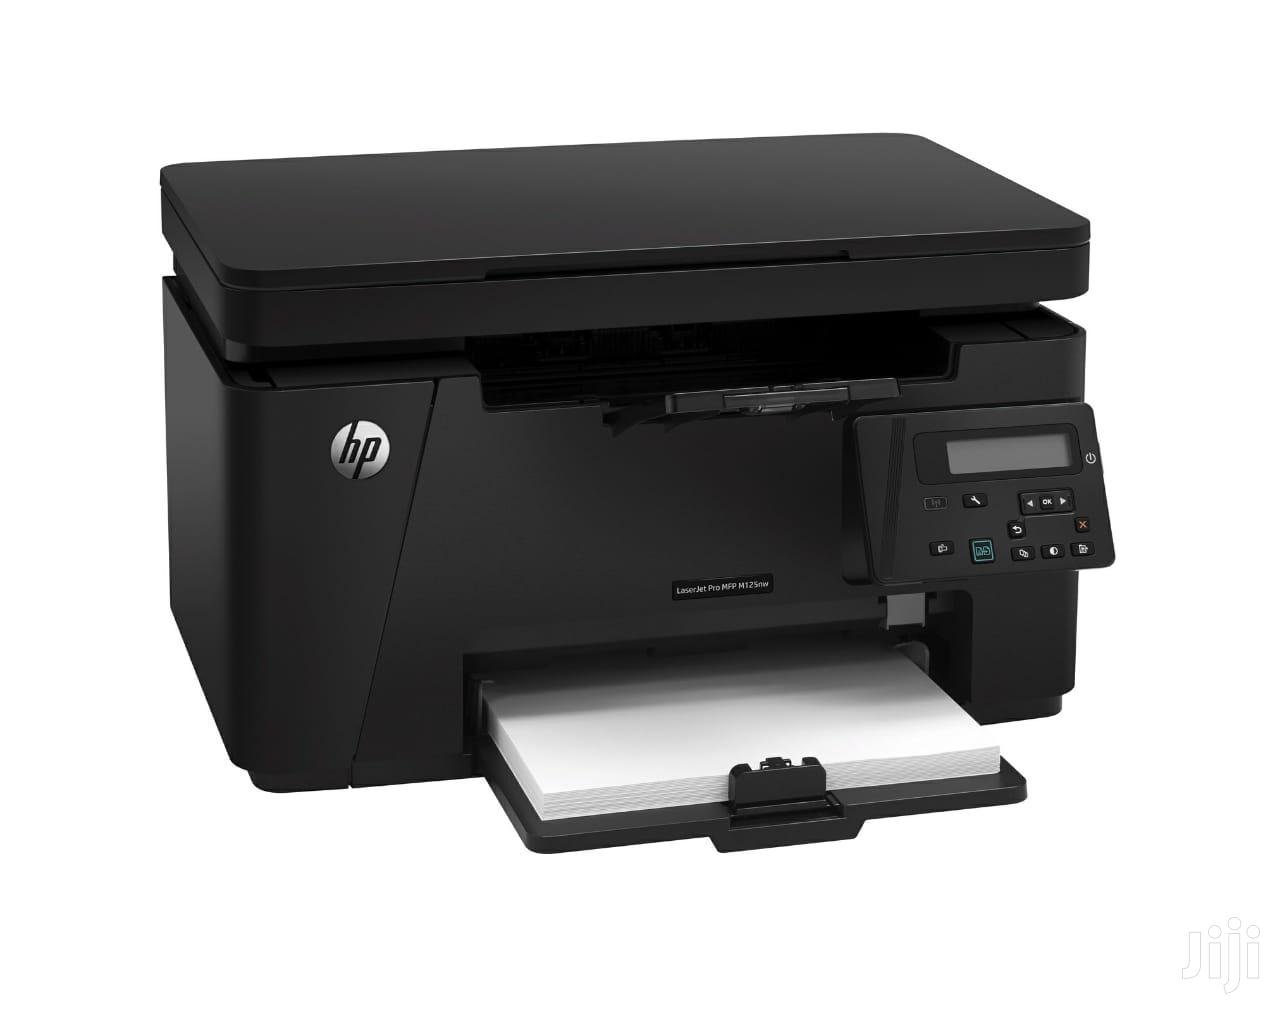 Hp Economical Printer Toners 83A/85A And More